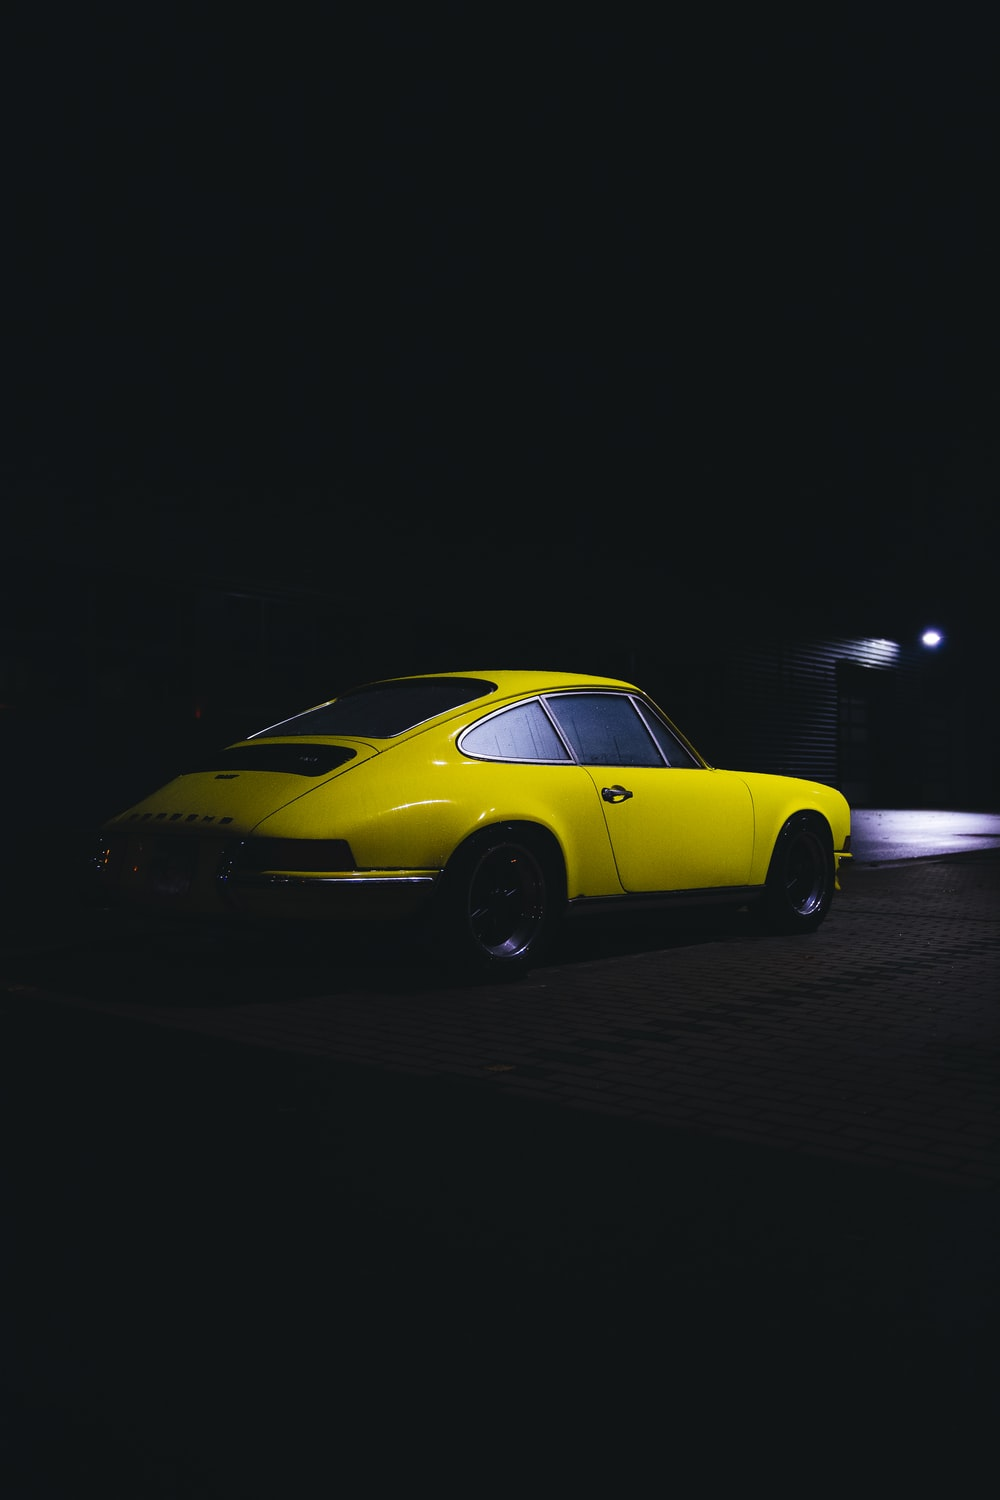 yellow coupe on black asphalt road during night time